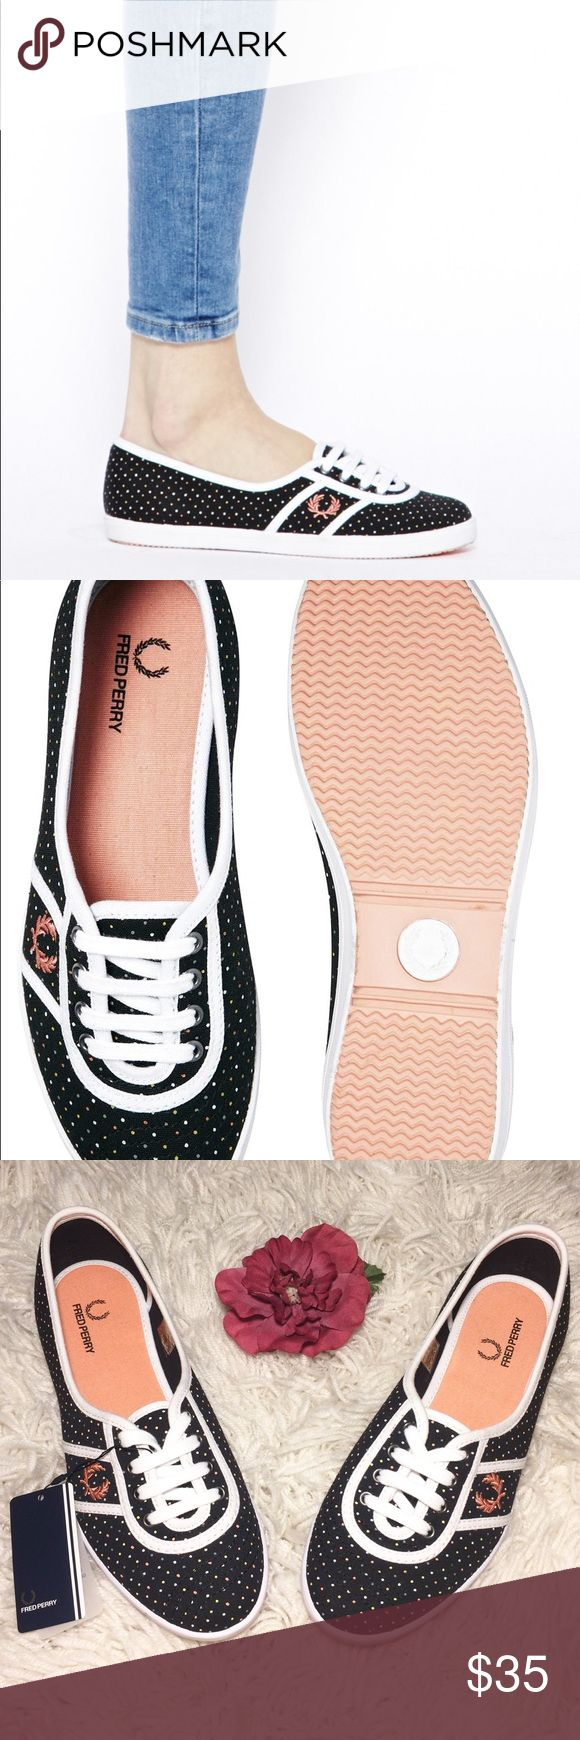 """NEW! Fred Perry """"Audrey"""" Polka Dot Trainers Size 7 Brand new Fred Perry """"Audrey"""" black polka dot trainers in a size 7. Canvas upper. Lace-up fastening. Signature wreath emblem. Contrast piping. Branded, textured tread. Fred Perry Shoes Sneakers"""